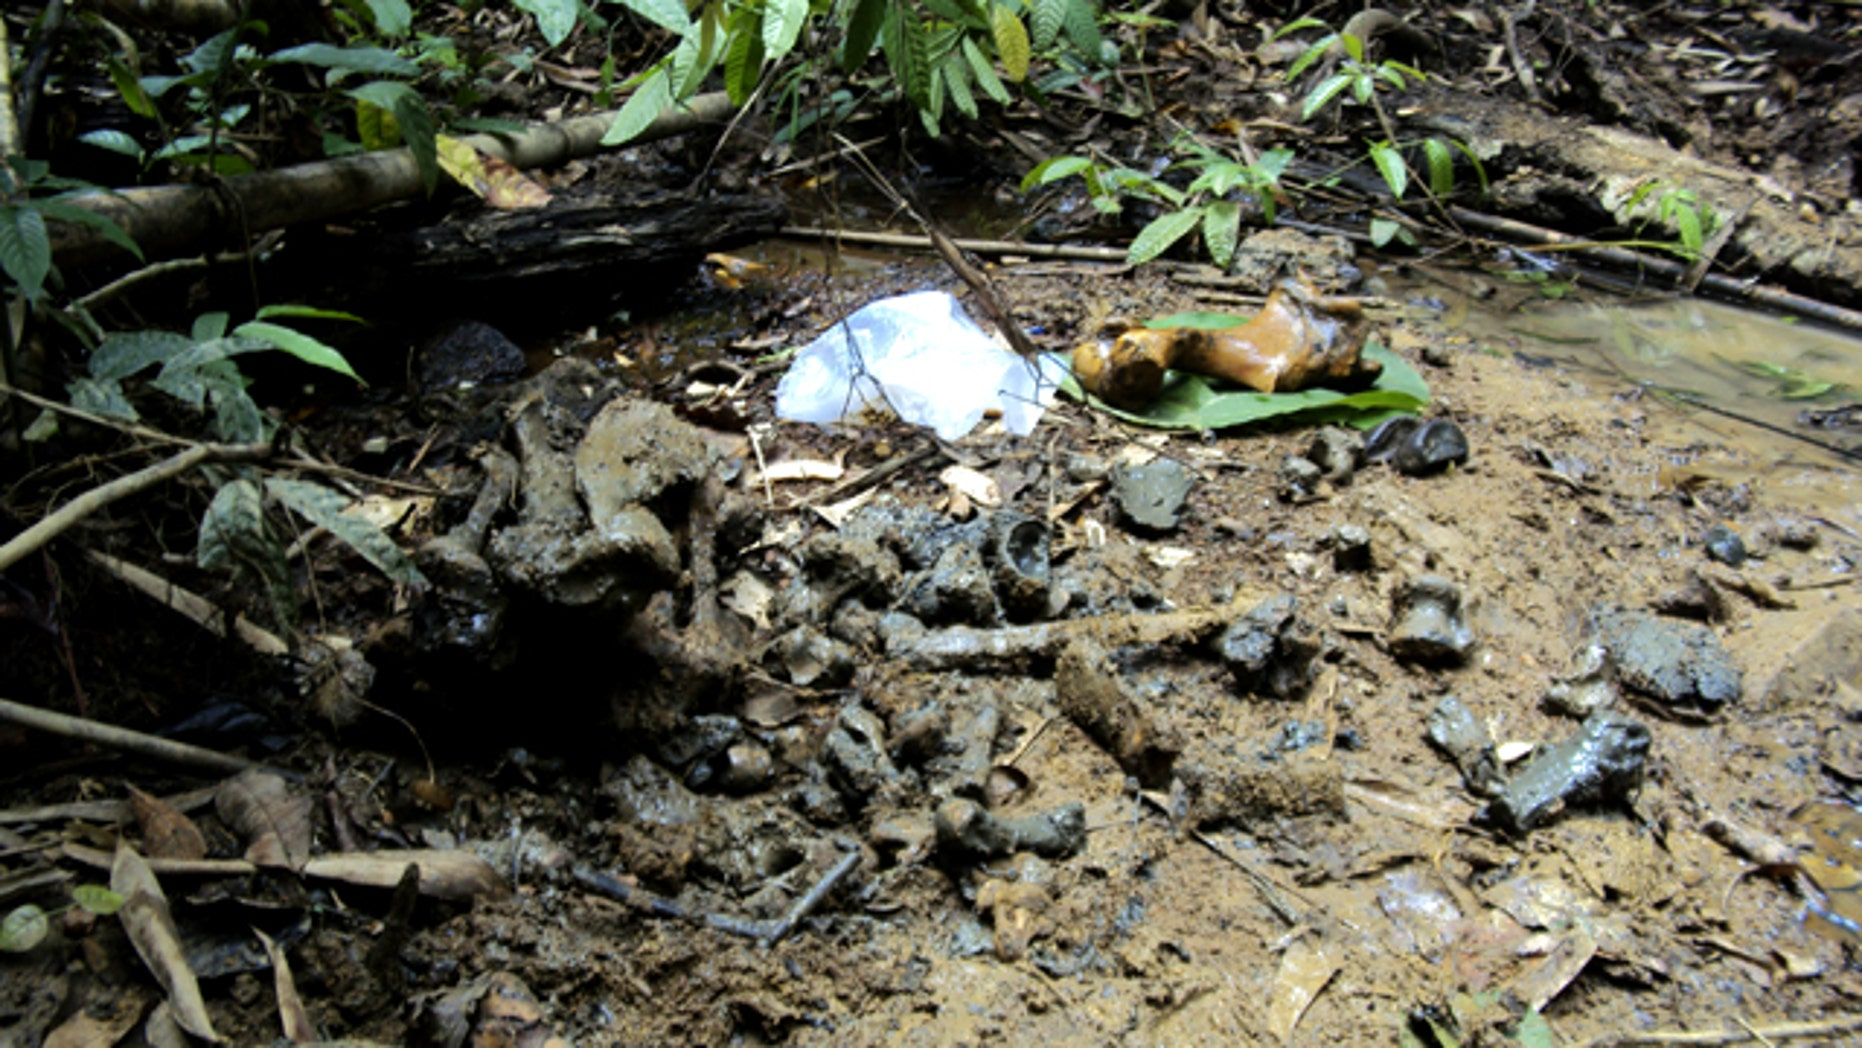 April 30: Bones of a Javan rhino lie on the ground at Cat Tien National Park in Dong Nai province, Vietnam. The creature, one of the world's rarest large mammals, has been found shot dead with its horn chopped off in the national park in southern Vietnam, a suspected victim of poachers, conservationists said.